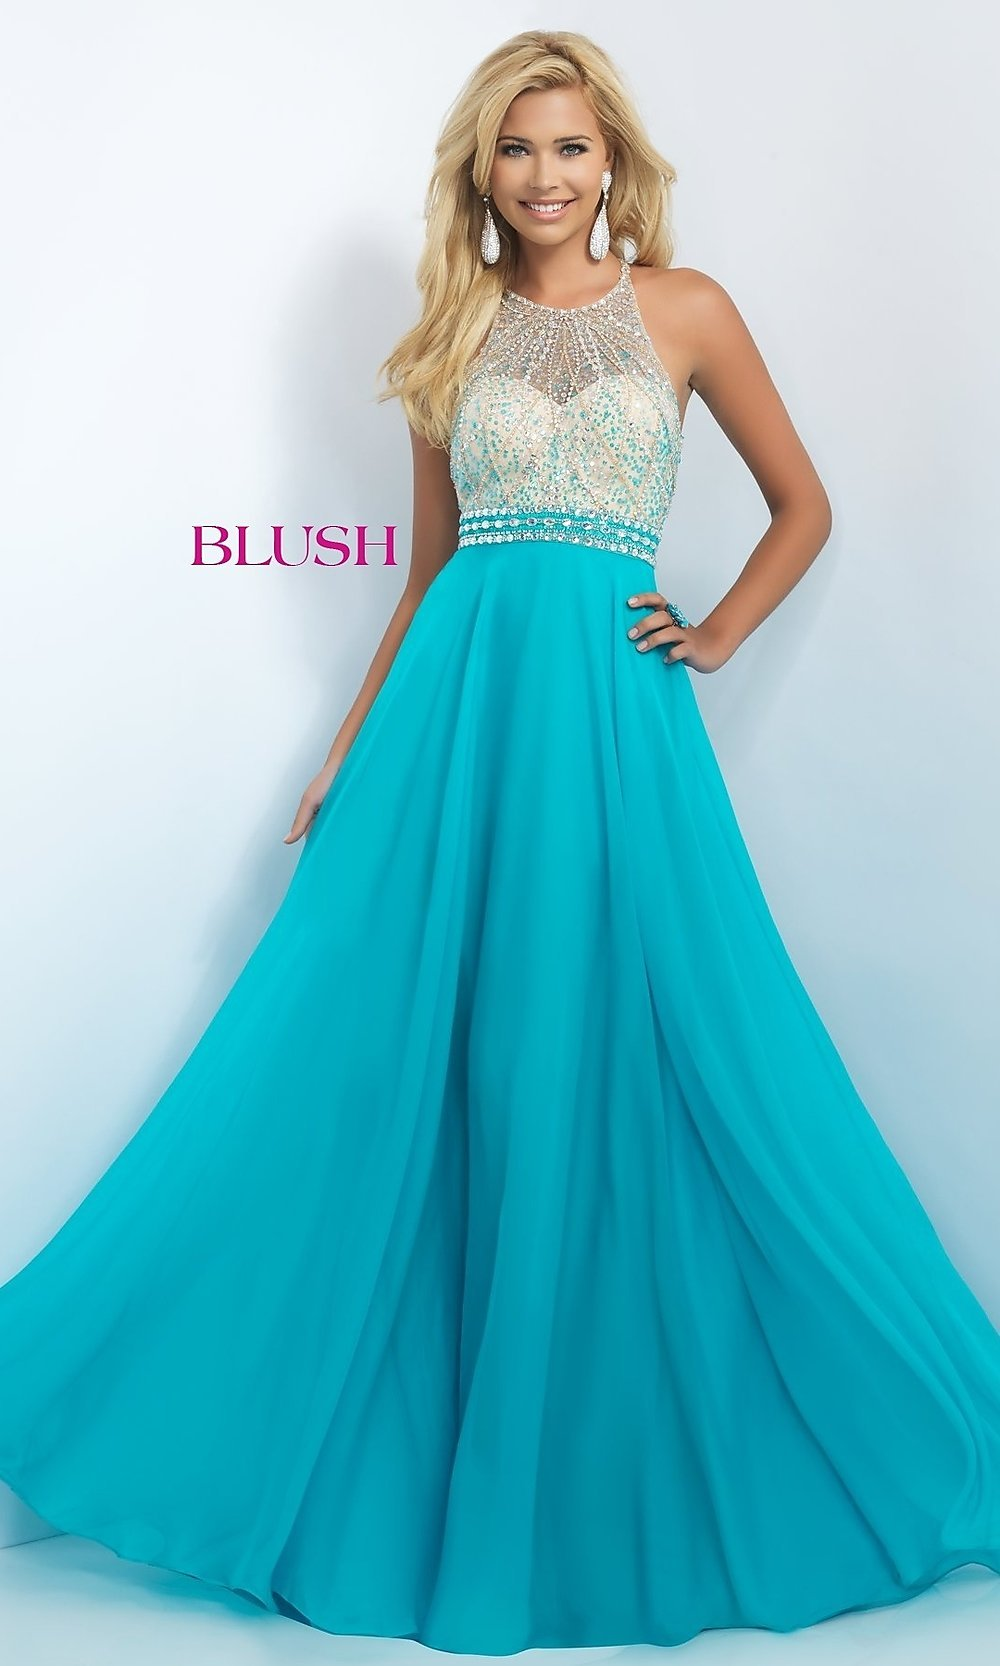 Beaded Blush Long Prom Dress - PromGirl